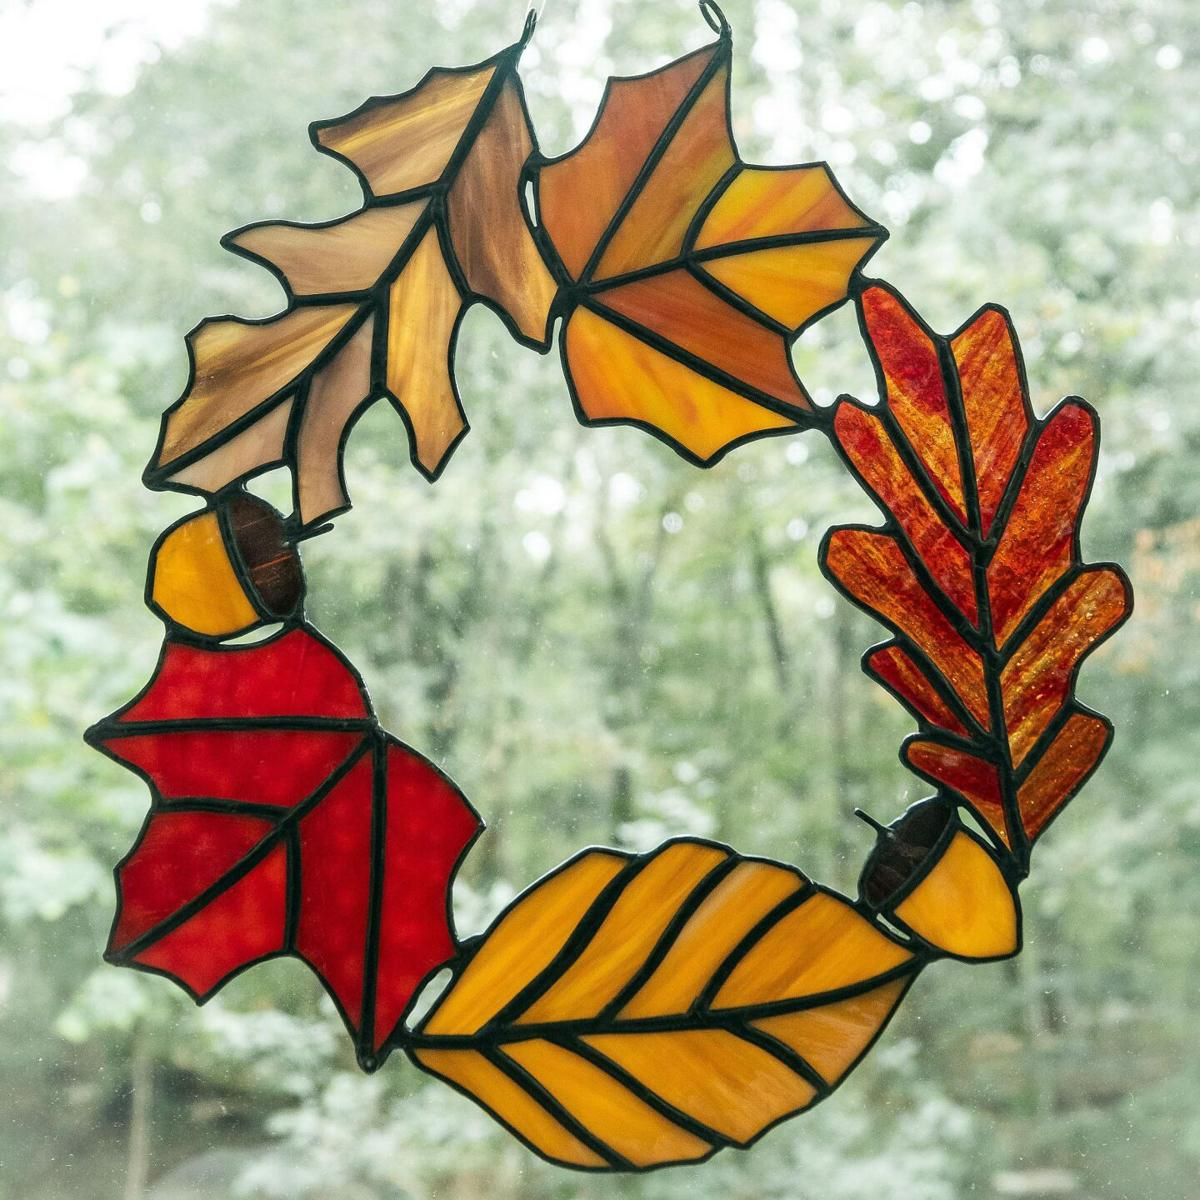 Autumn Arts Festival Exhibit opens Sept. 18